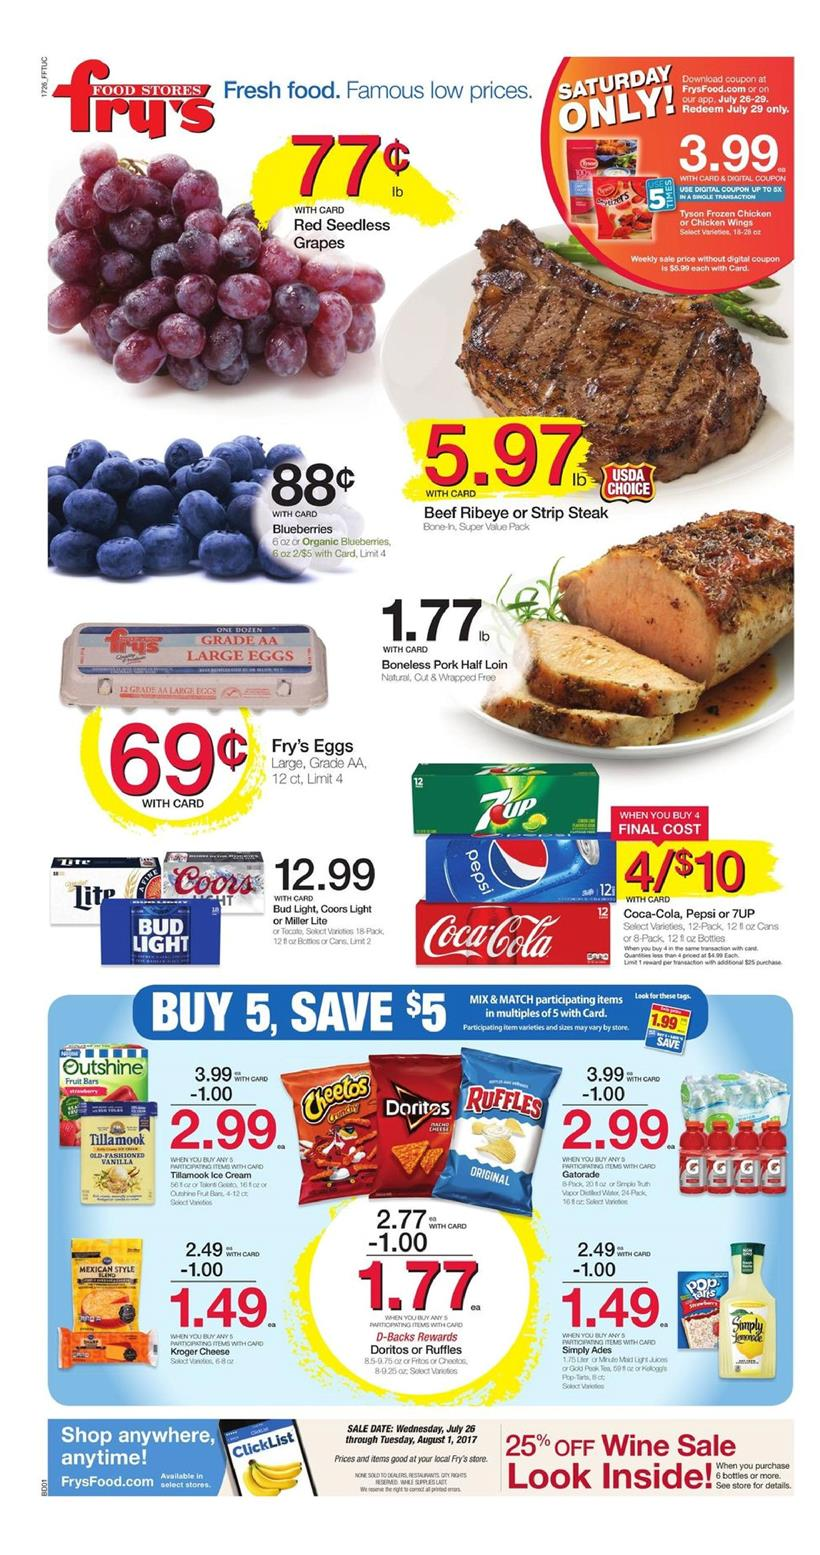 Fry's Food line of private brands includes Pet Pride, Bakery Fresh Goodness, Private This Week Specials · This Week Sale Ad · Local Ad Specials · Weekly Specials.